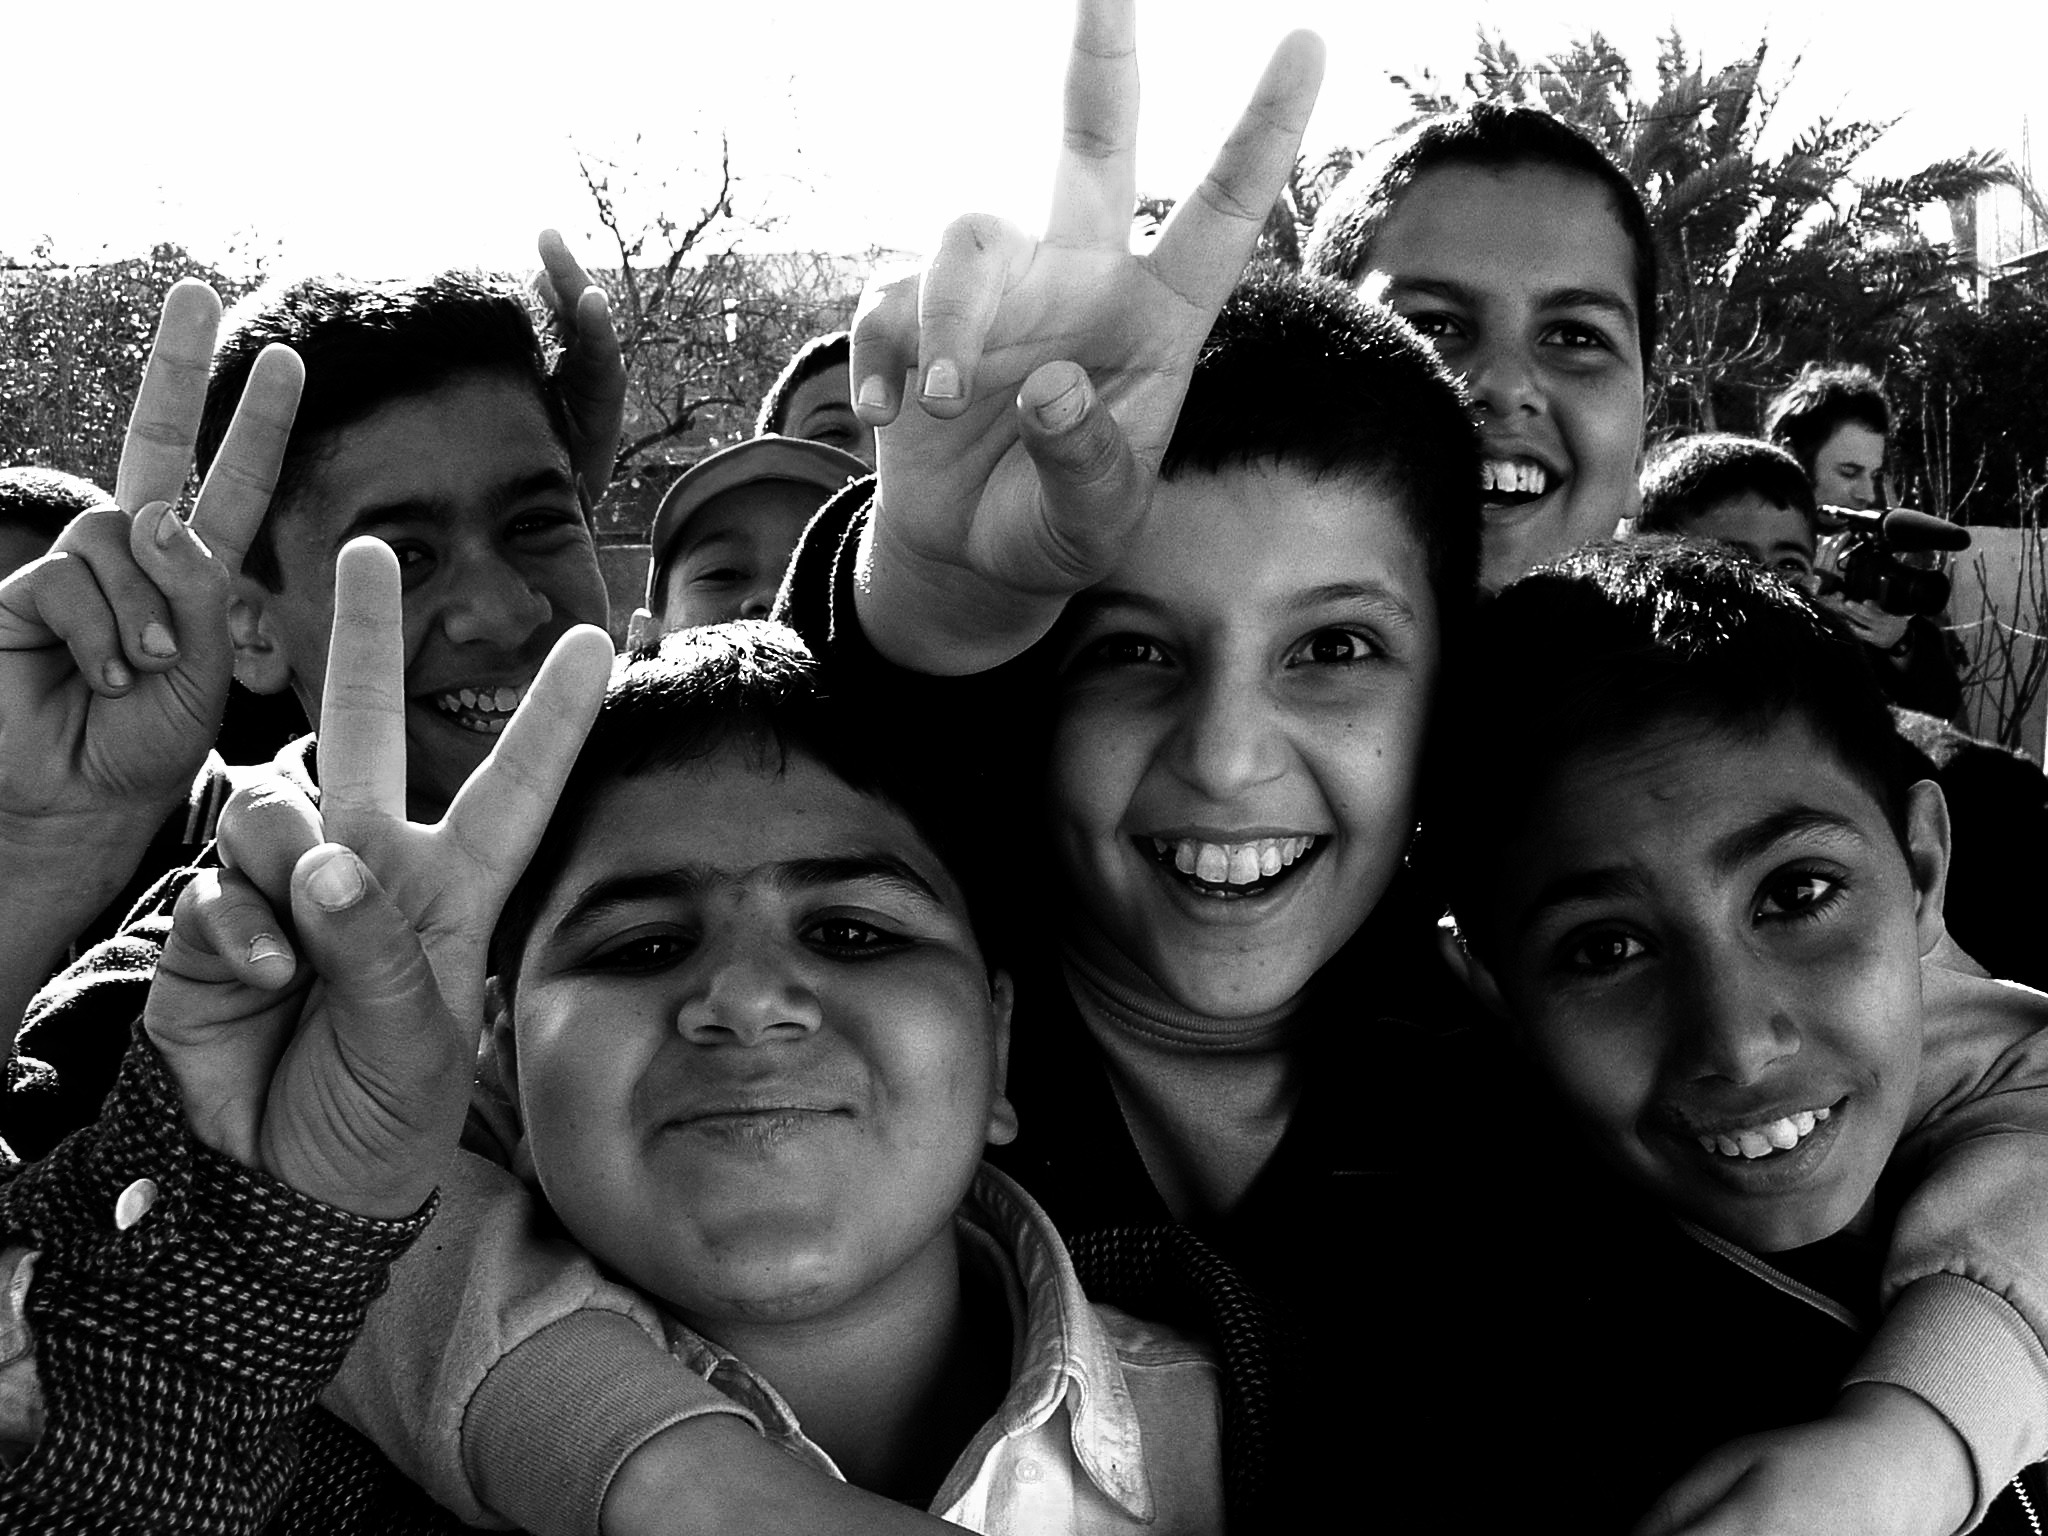 Iraqi_boys_giving_peace_sign